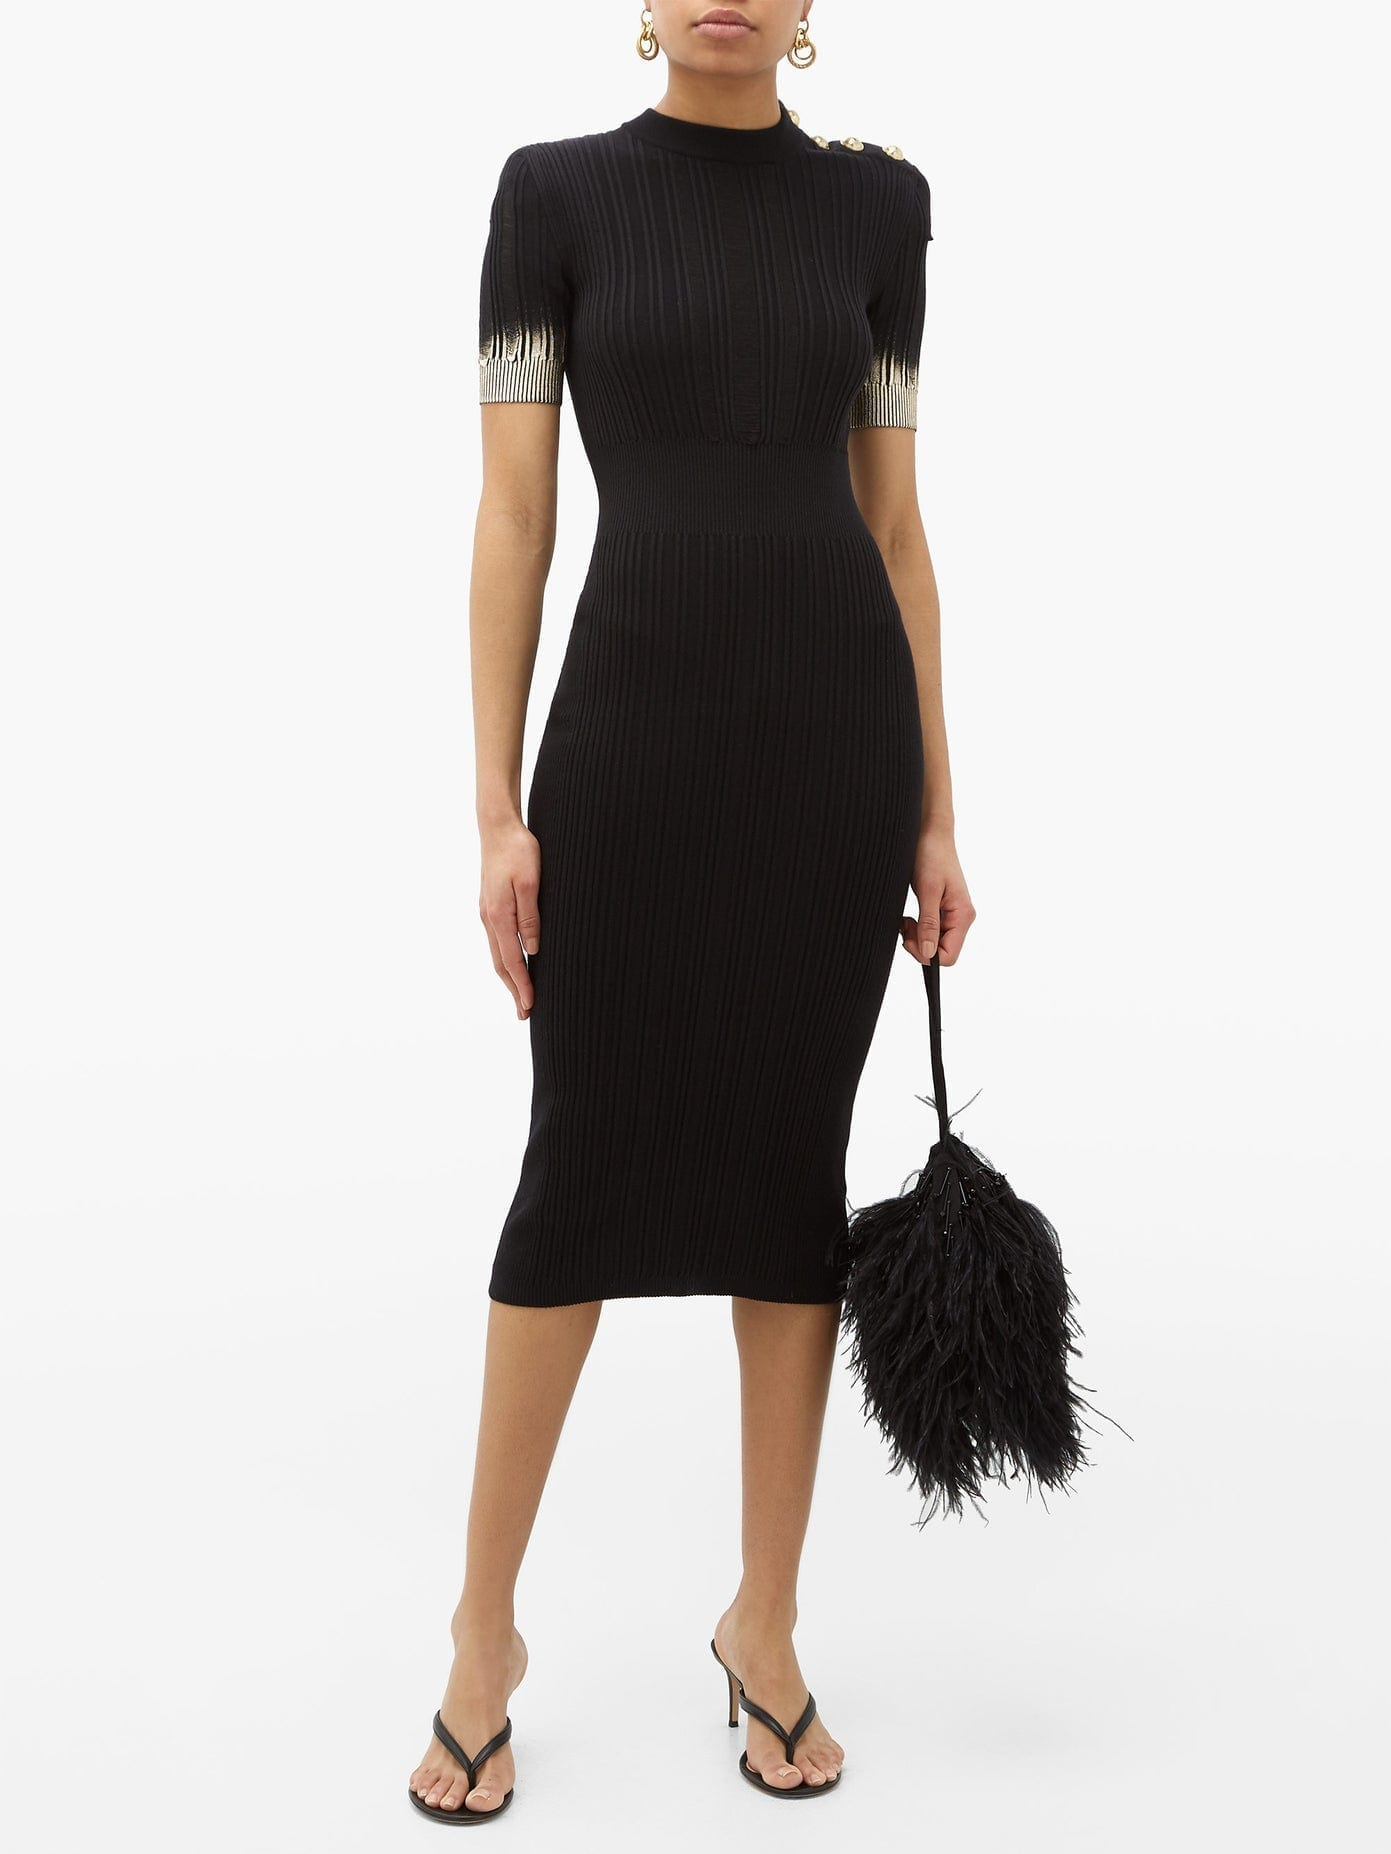 BALMAIN Metallic-sleeve Knitted Midi Dress